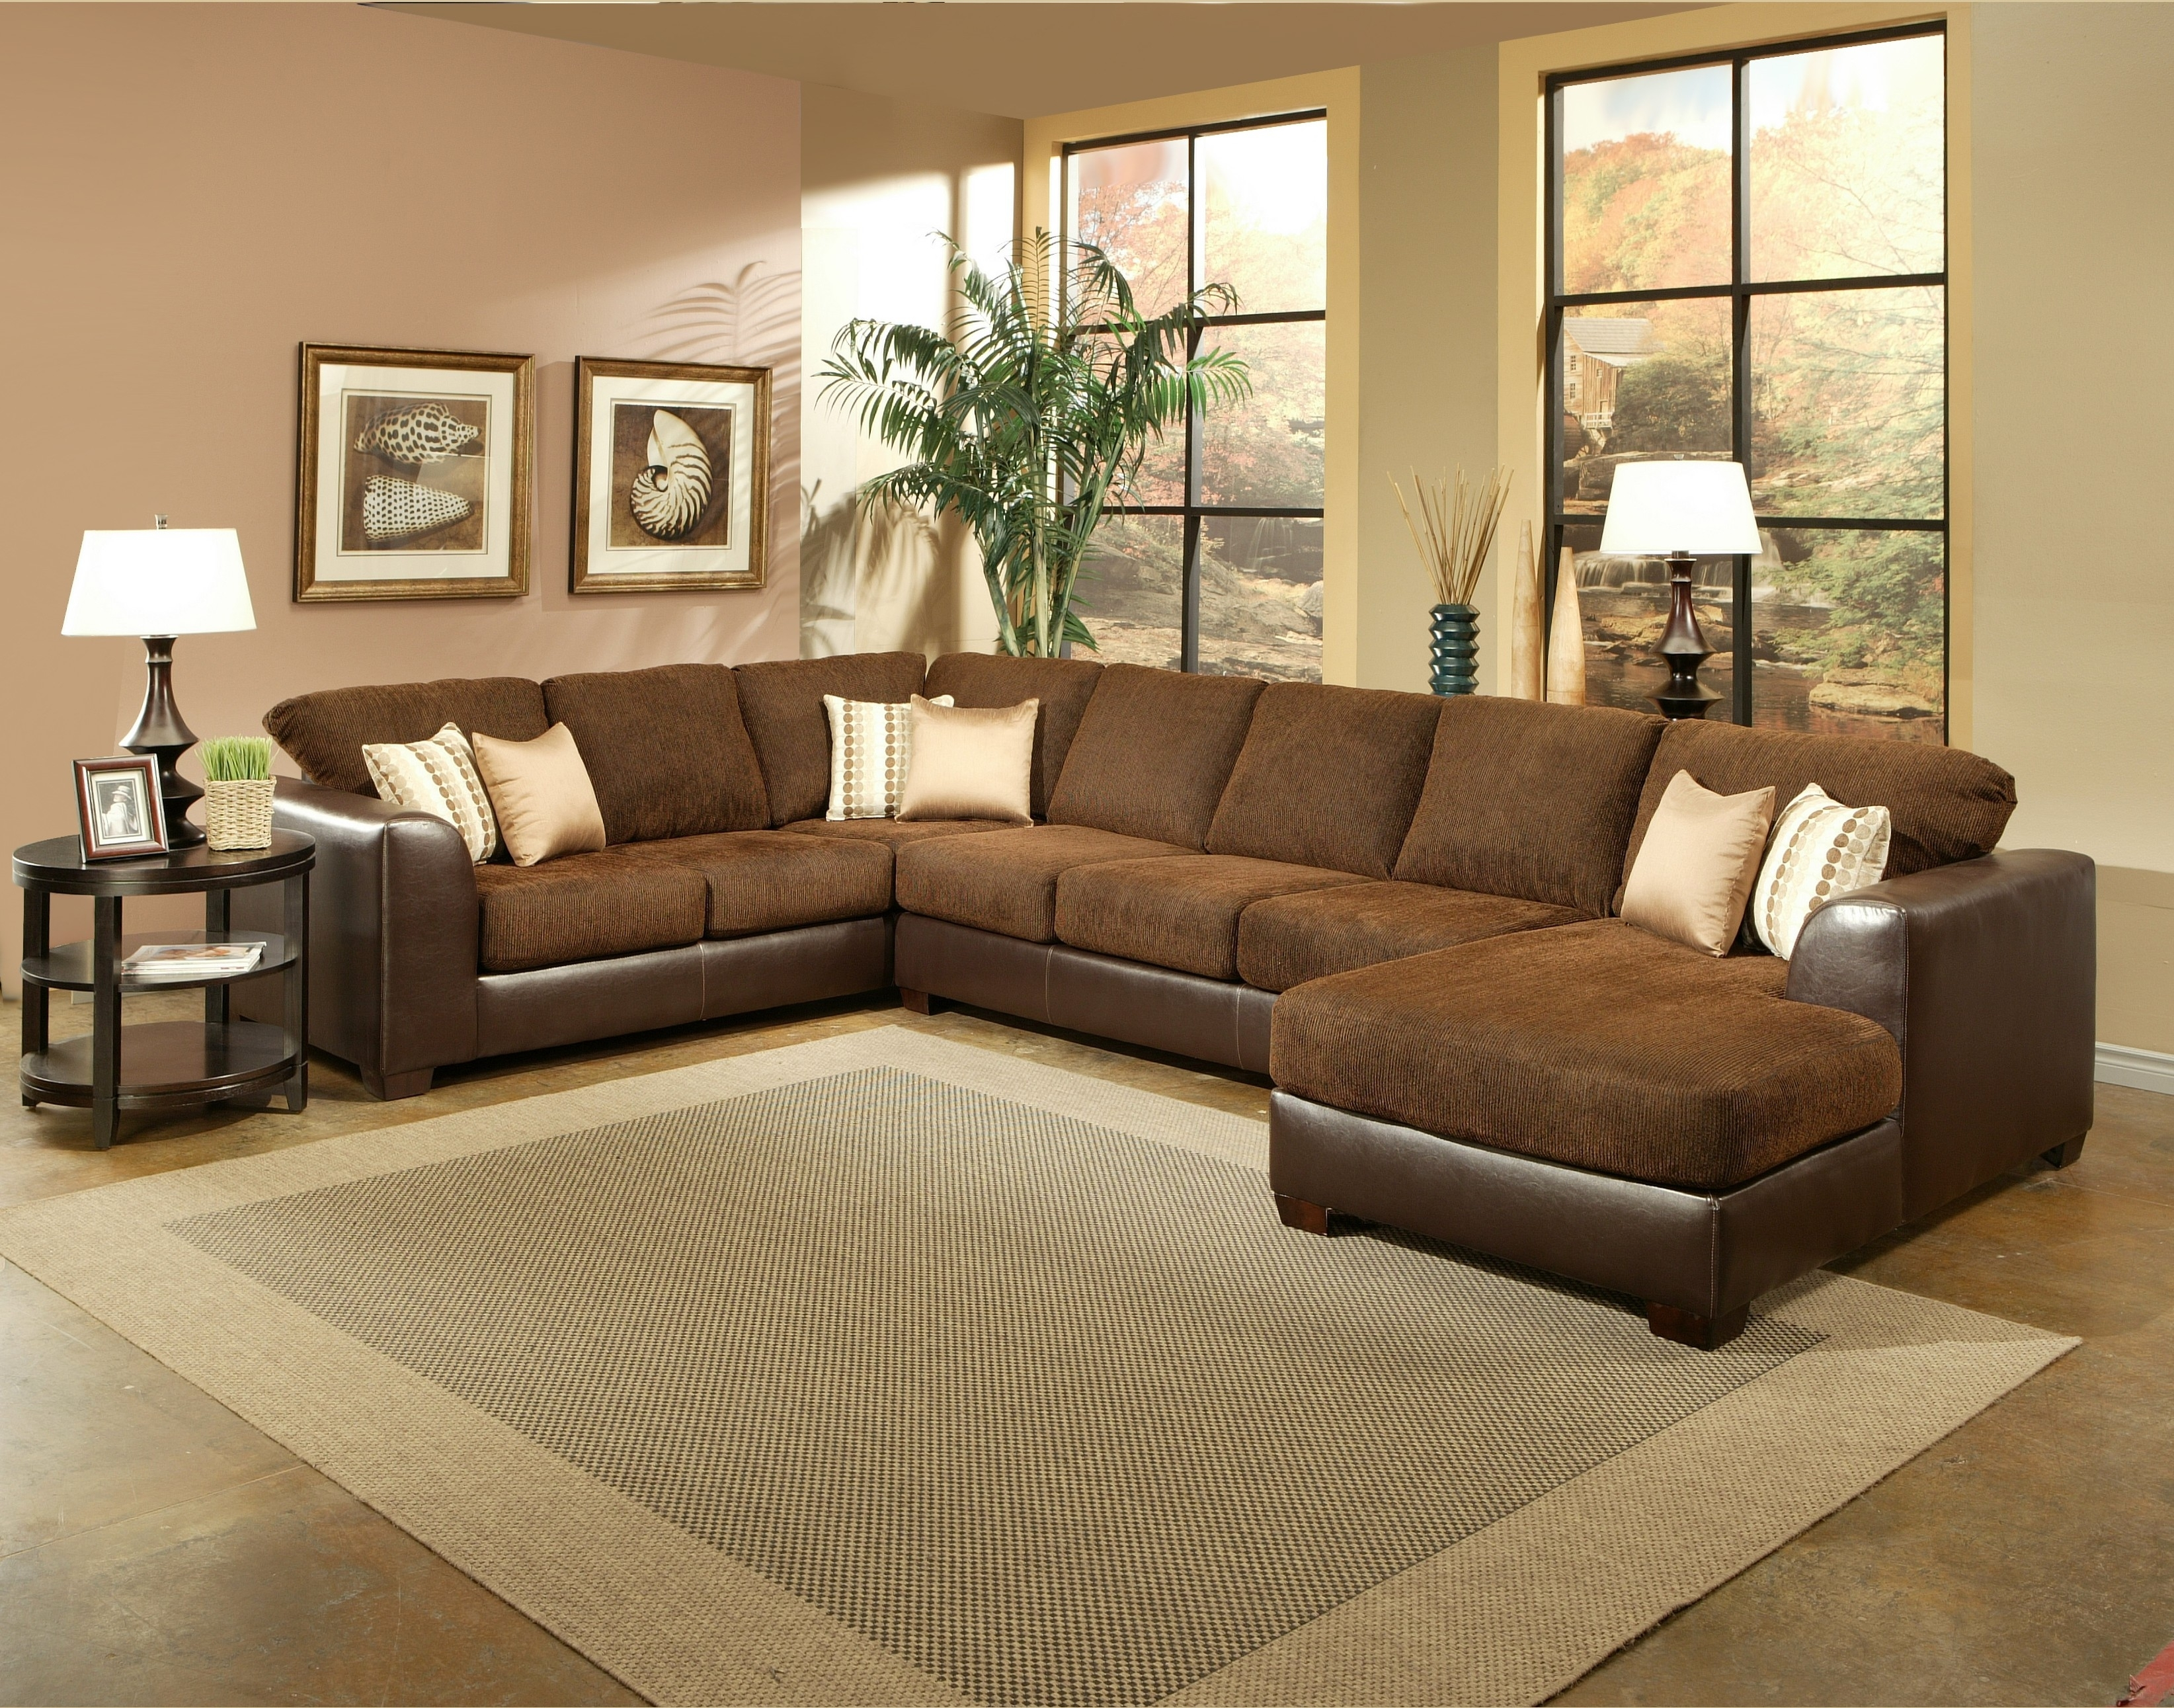 Benchley 3 Pc York Sectional For Sierra Down 3 Piece Sectionals With Laf Chaise (View 5 of 30)